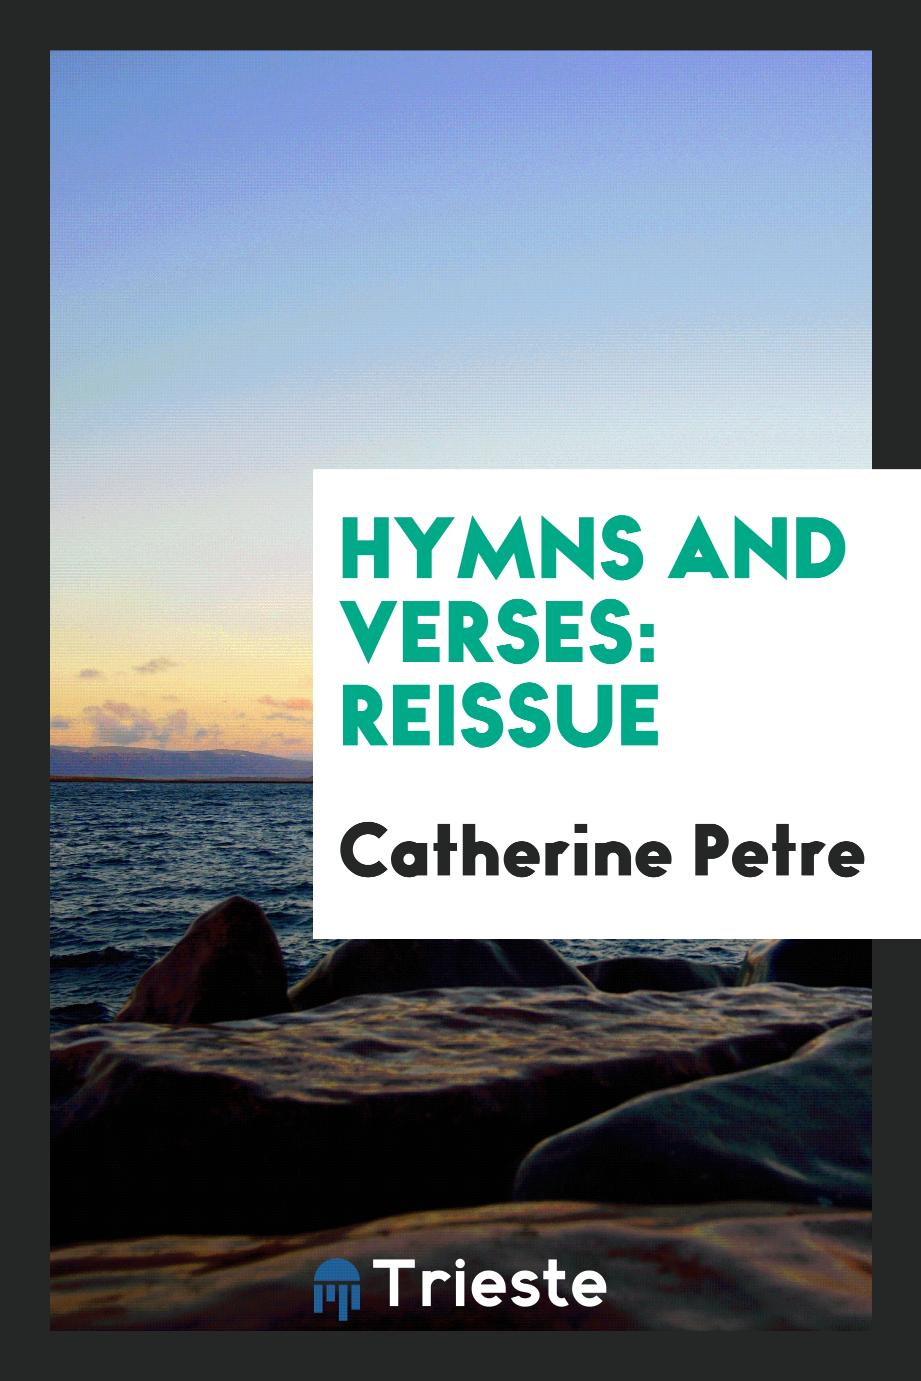 Hymns and Verses: Reissue